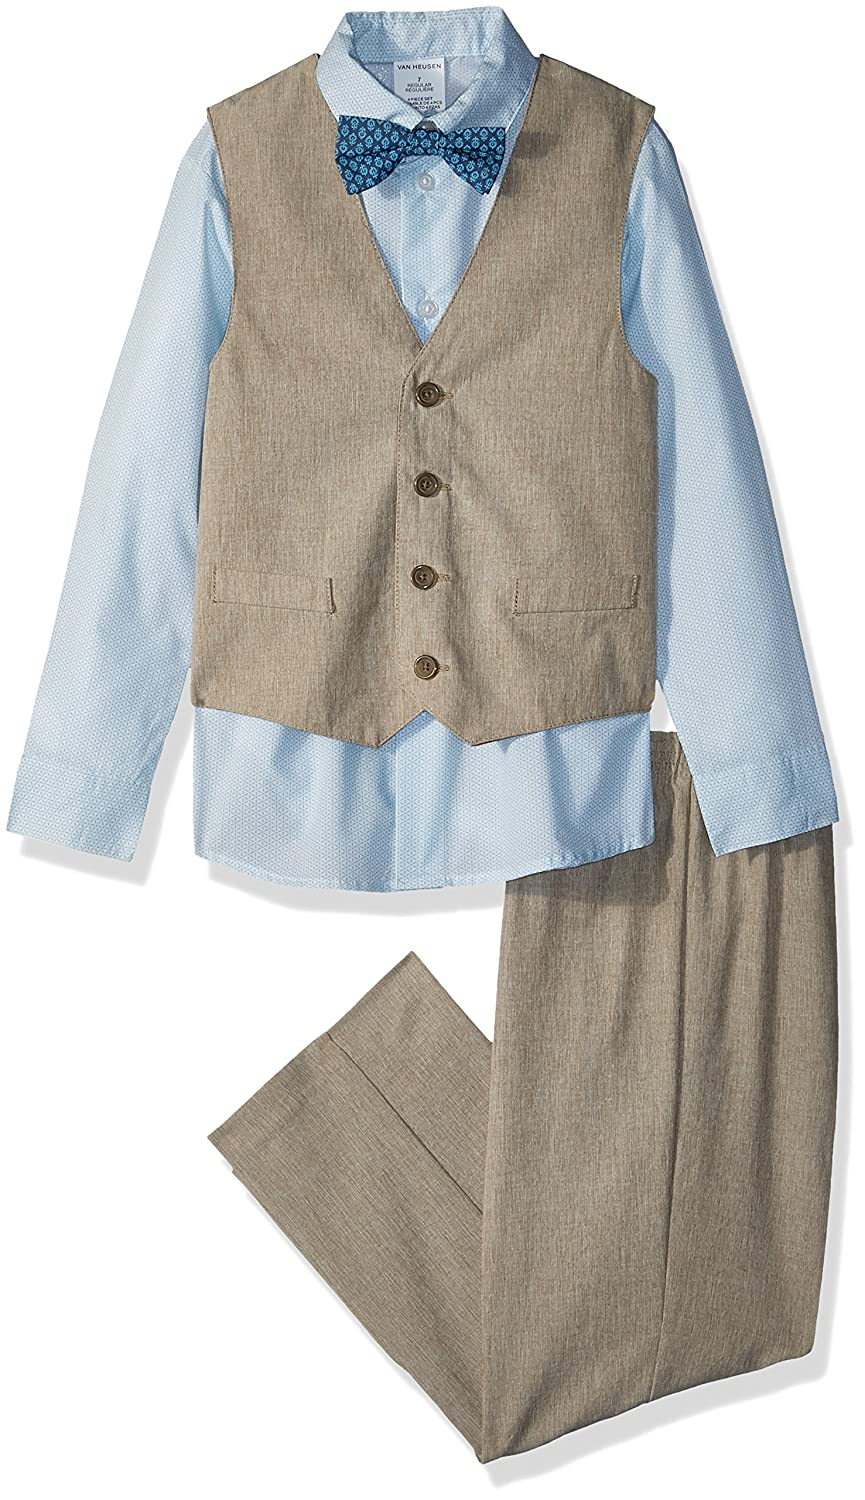 1920s Children Fashions: Girls, Boys, Baby Costumes Van Heusen Boys Little 4-Piece Formal Bow Tie Vest Set $40.50 AT vintagedancer.com